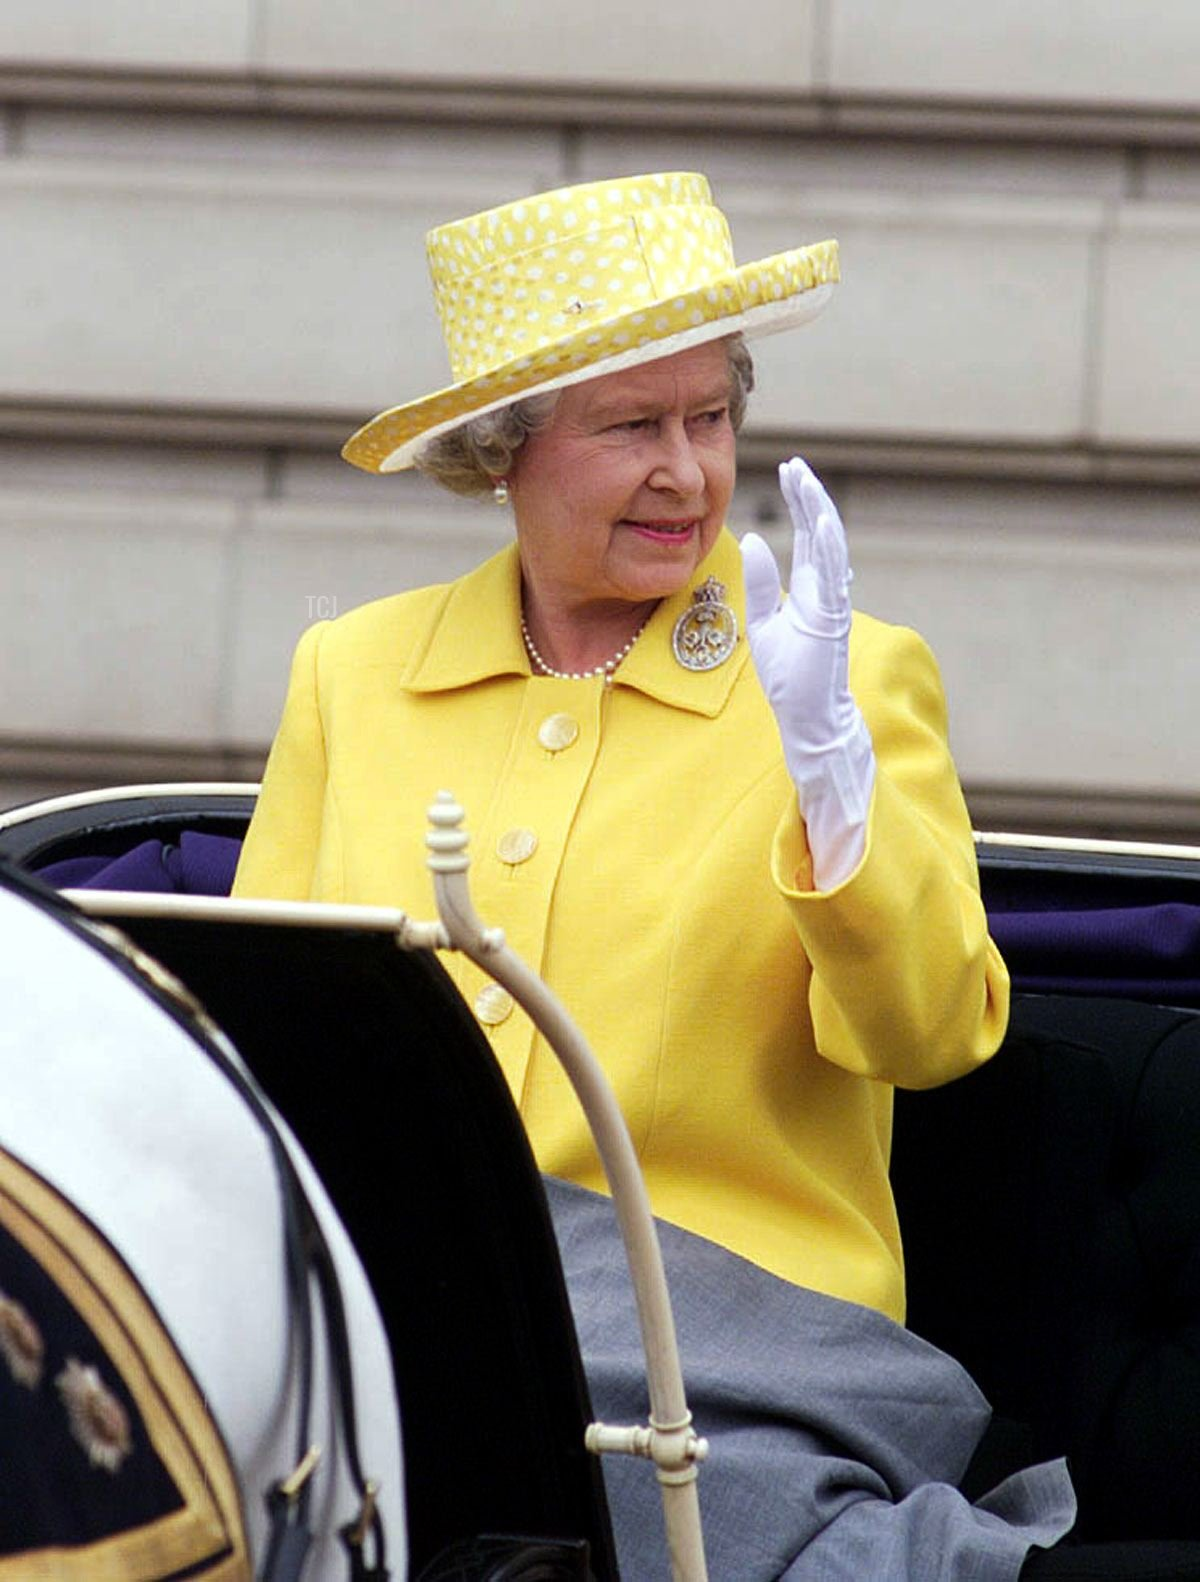 Queen Elizabeth II waves to crowds as she rides in an open carriage on the way to the Trooping the Colour ceremony in London, 12 June 1999